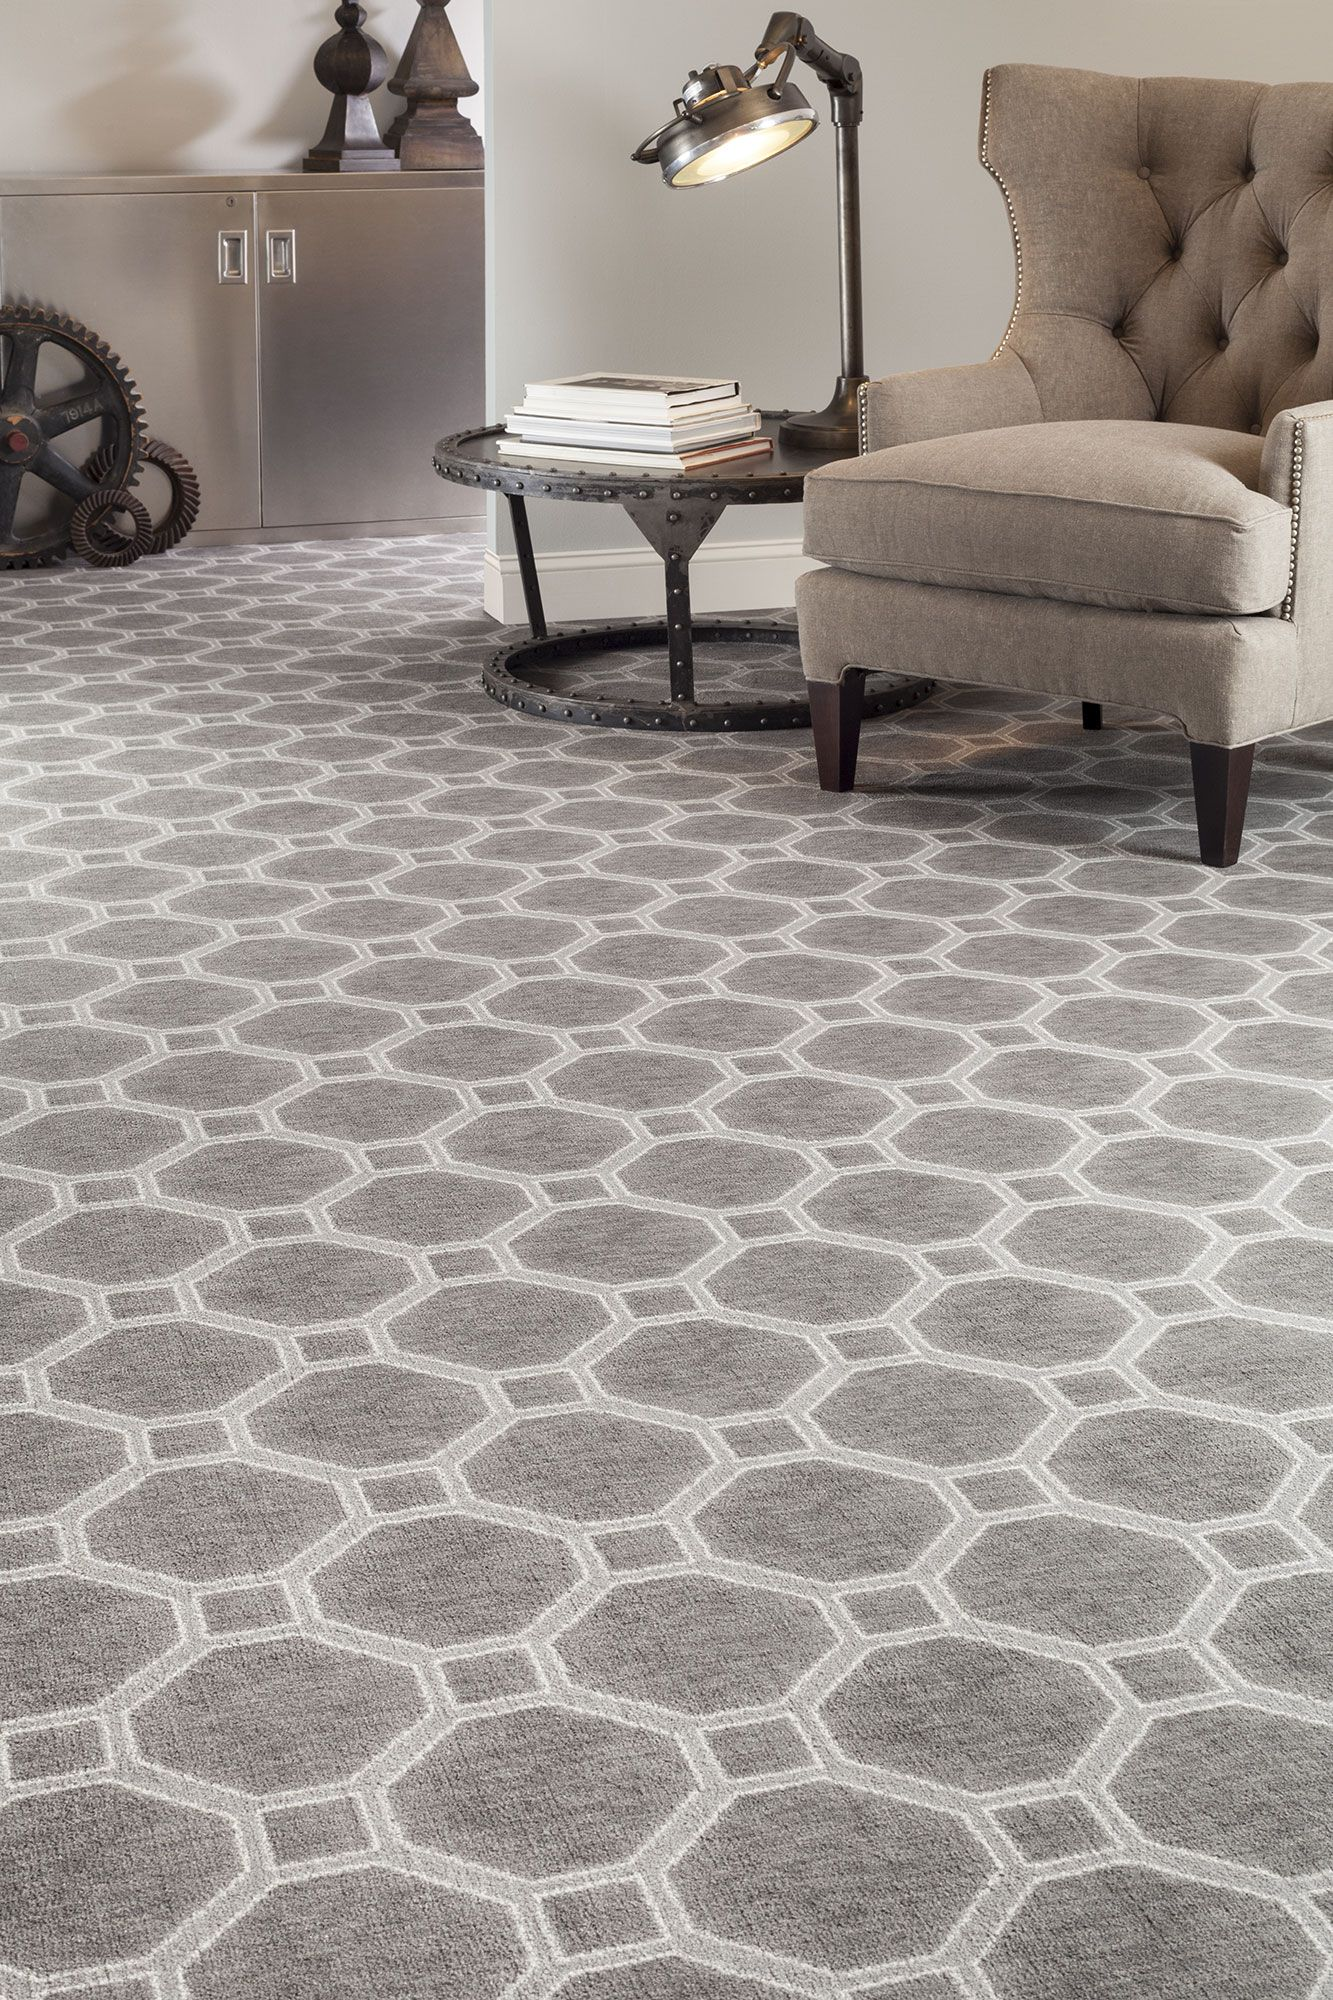 Patterned Carpet Hexagon Patterned Carpet Gray Bold Flooring With Neutral